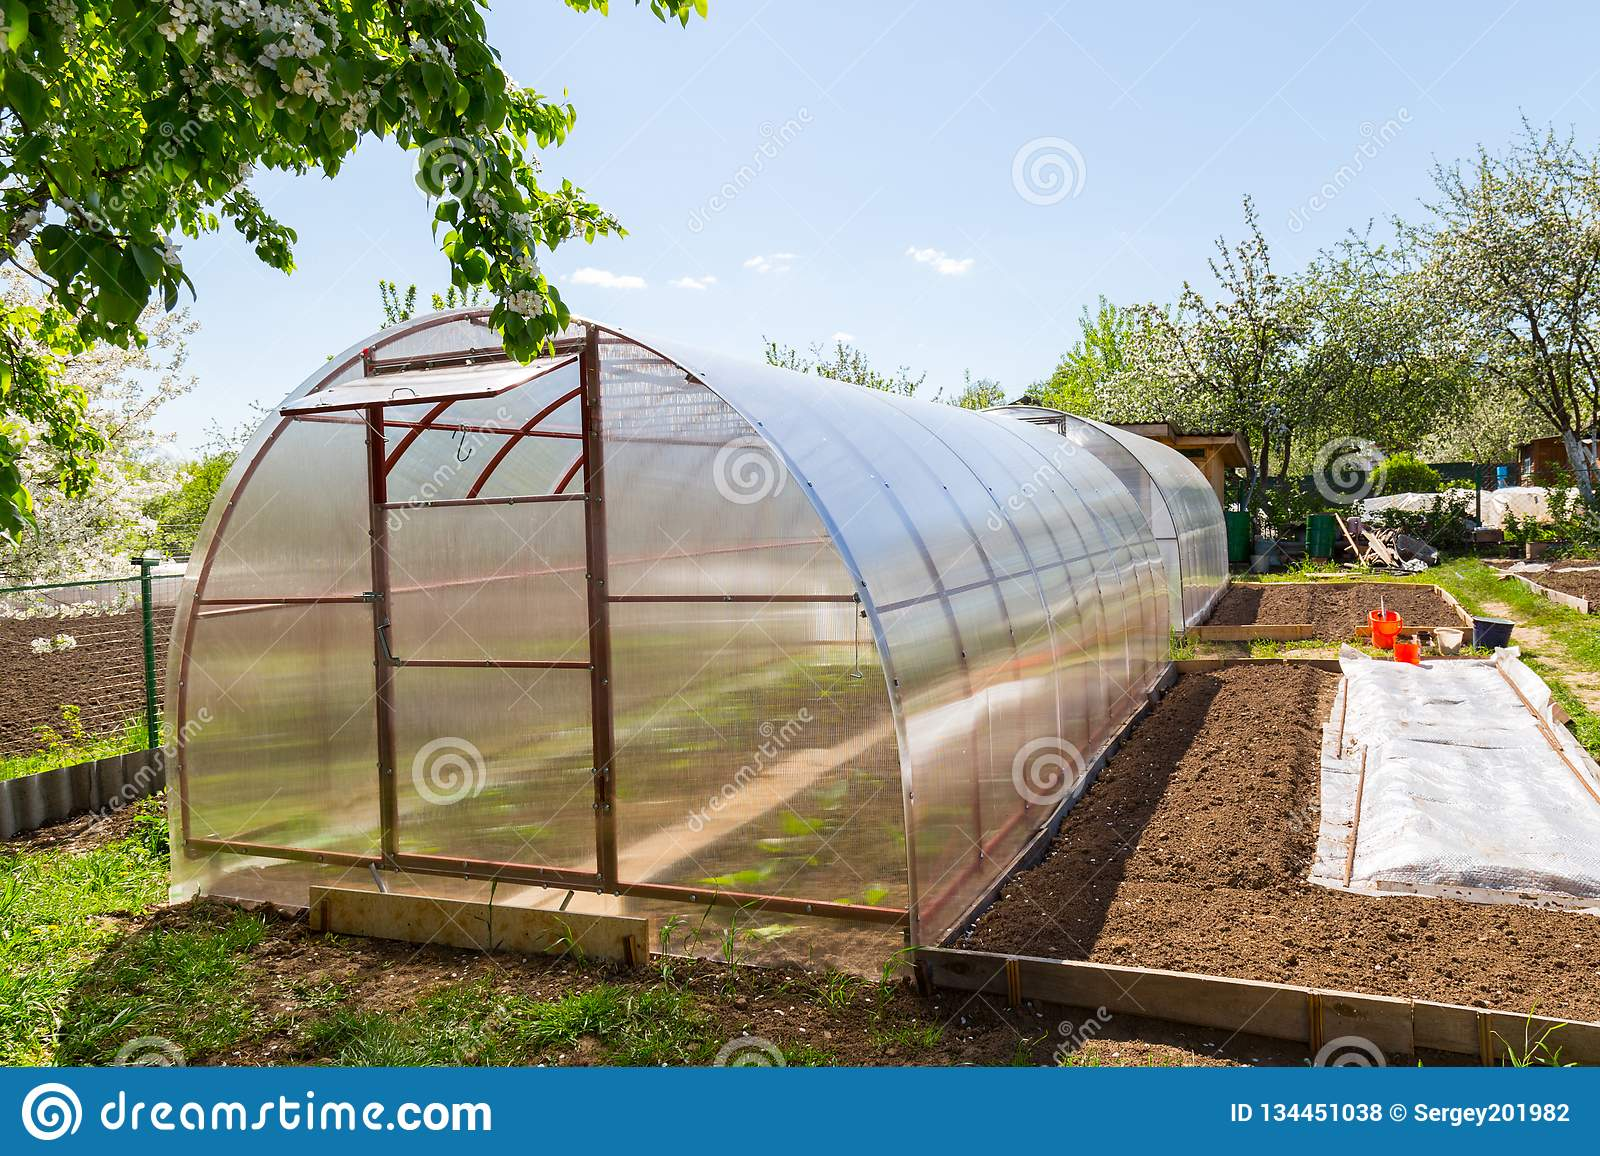 Polycarbonate Greenhouse In The Garden Stock Photo - Image